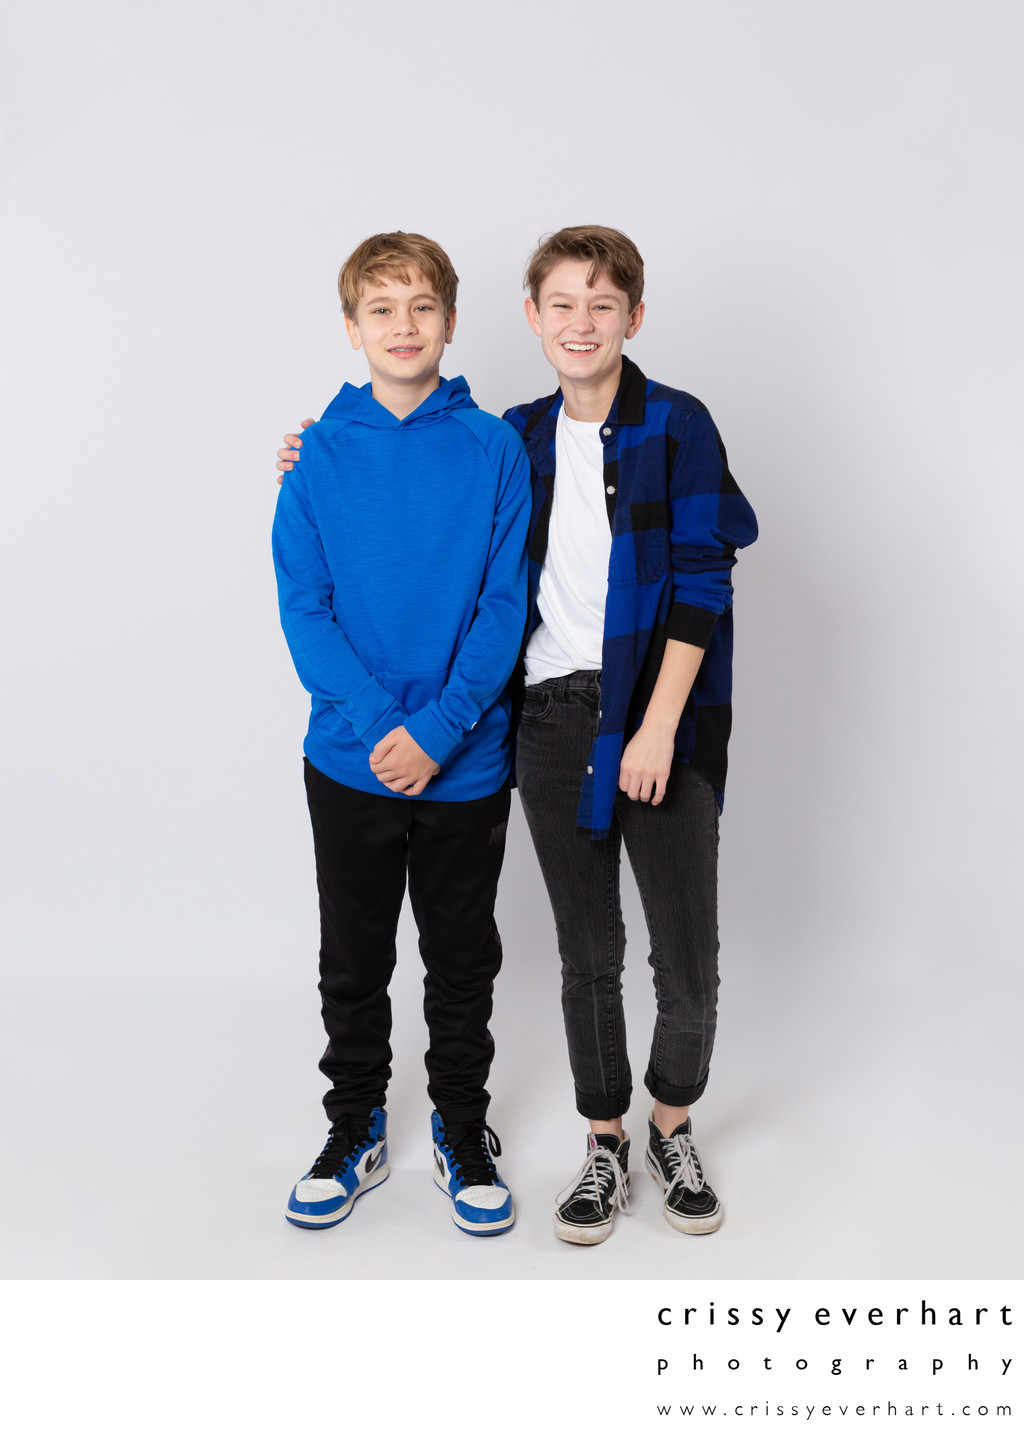 Brothers - Family Photos in Portrait Studio